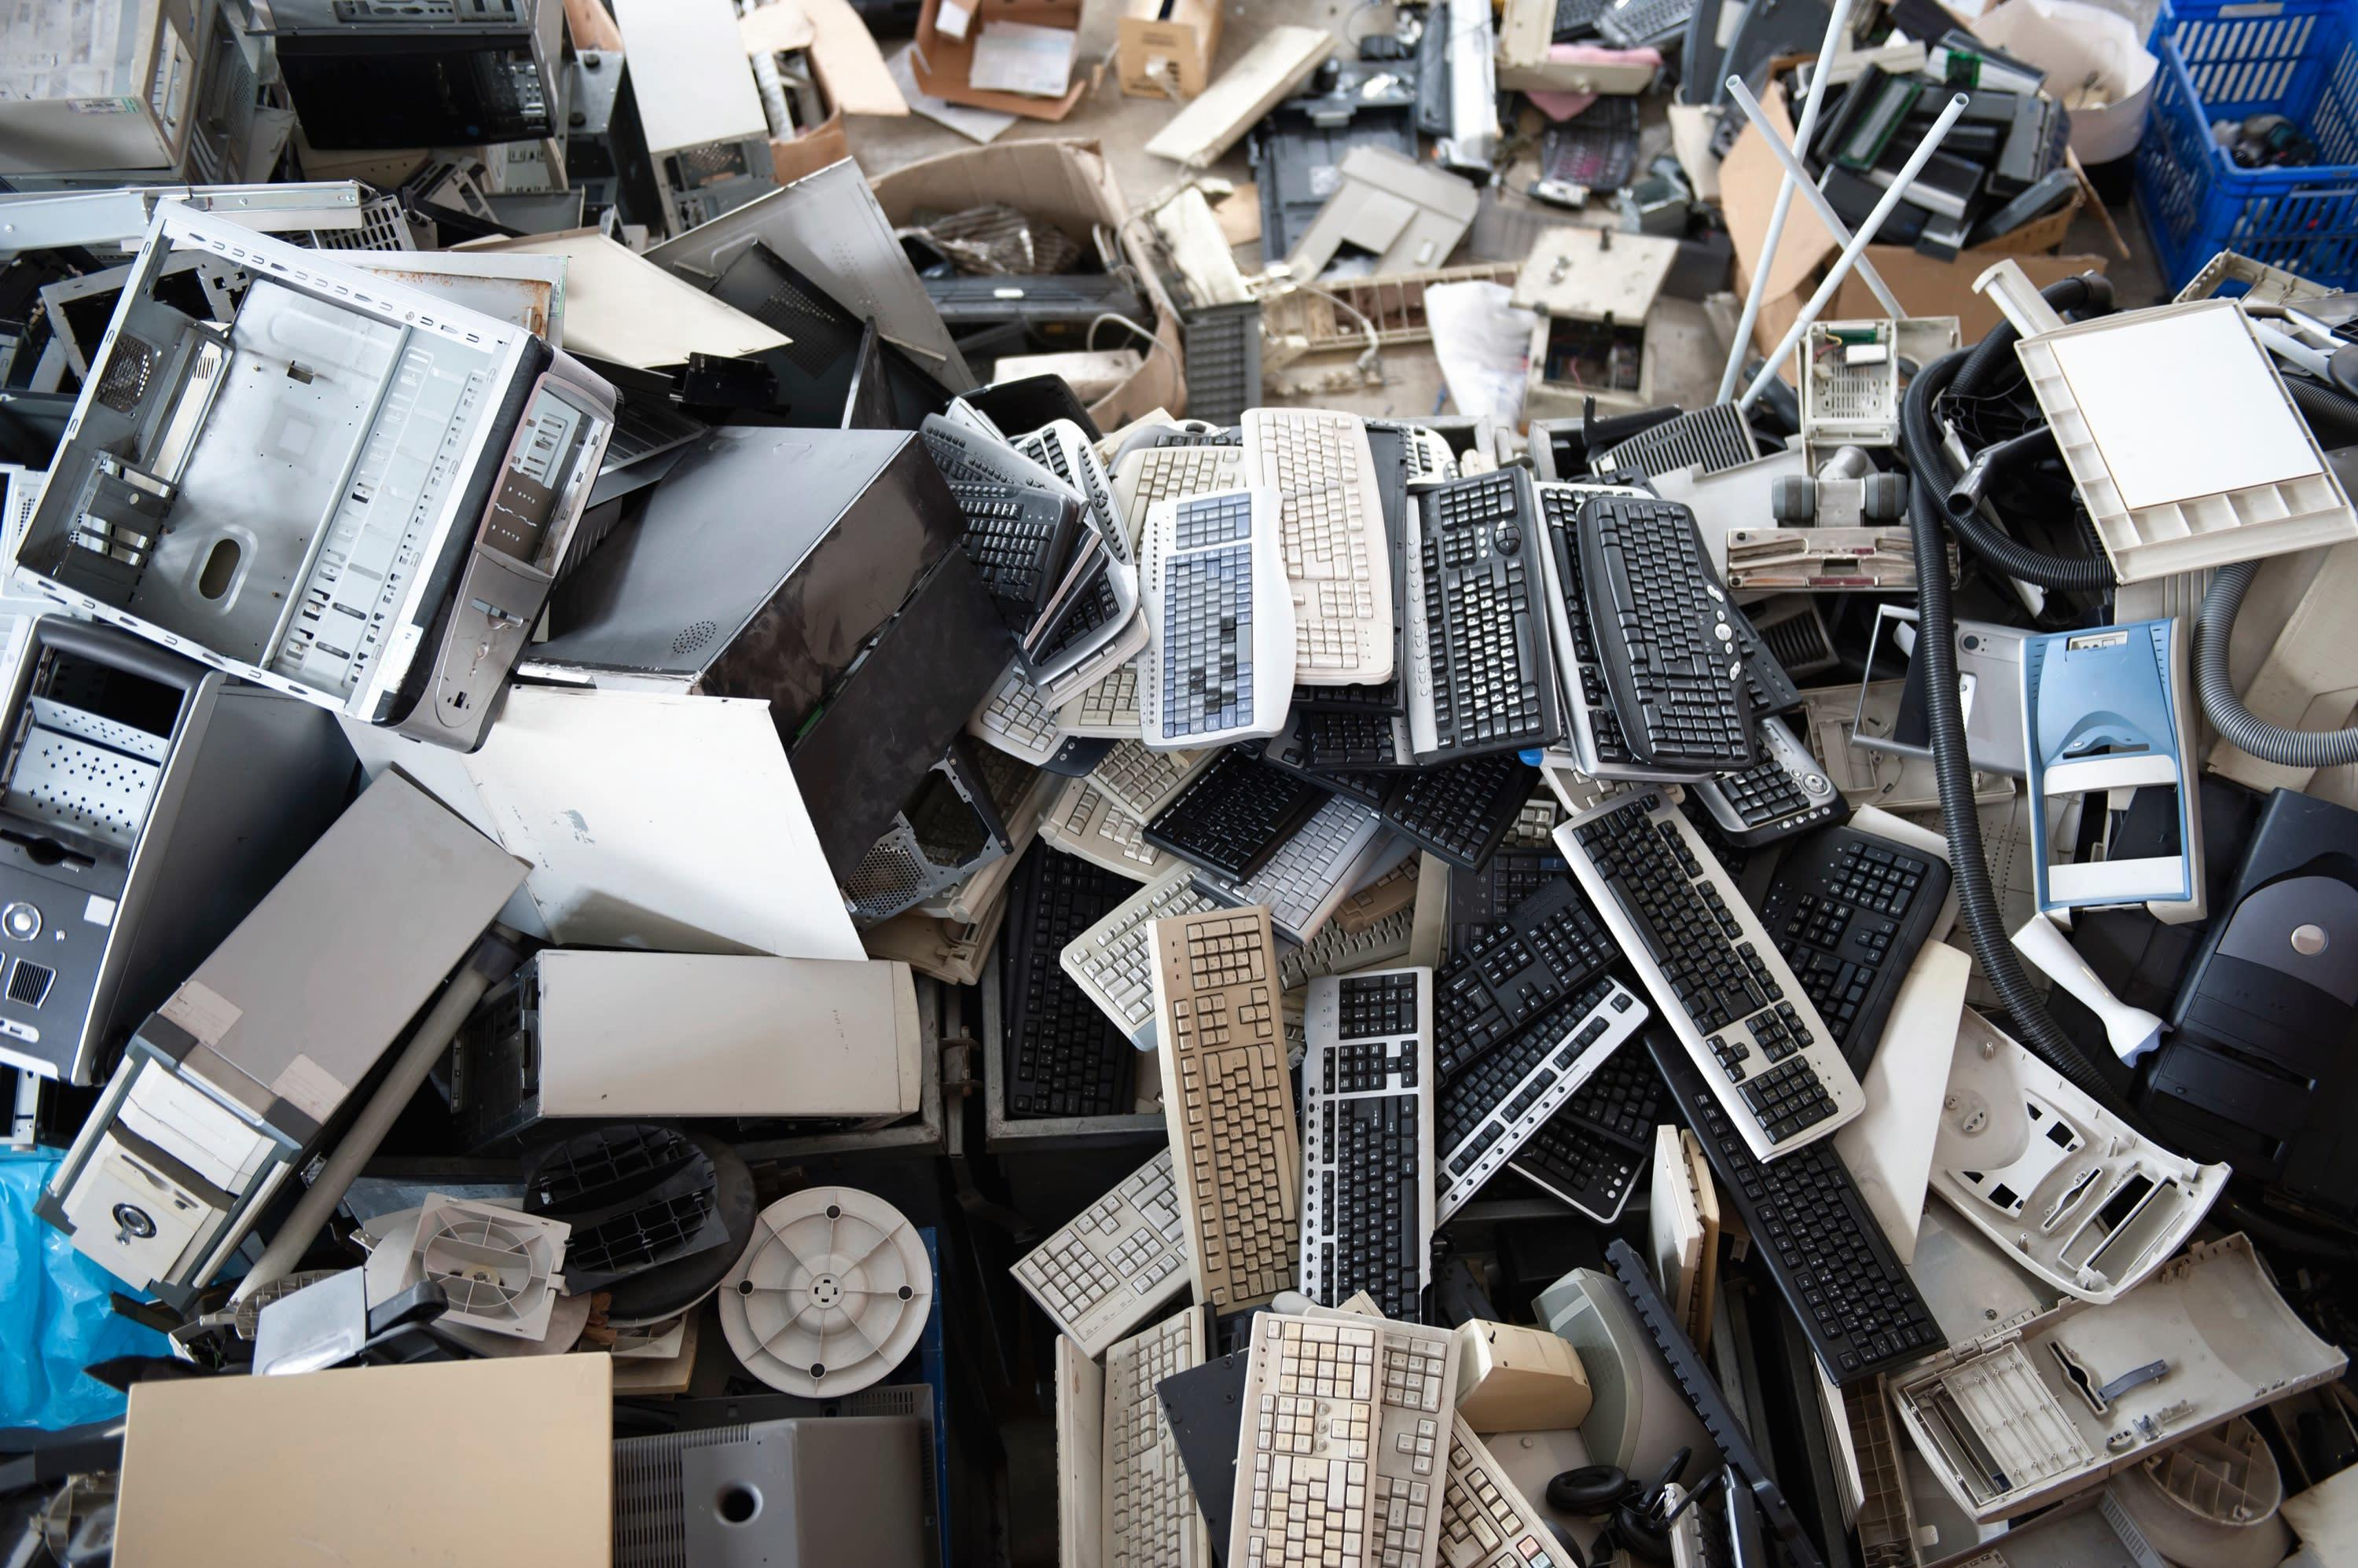 Electronics Shredding & Recycling Event